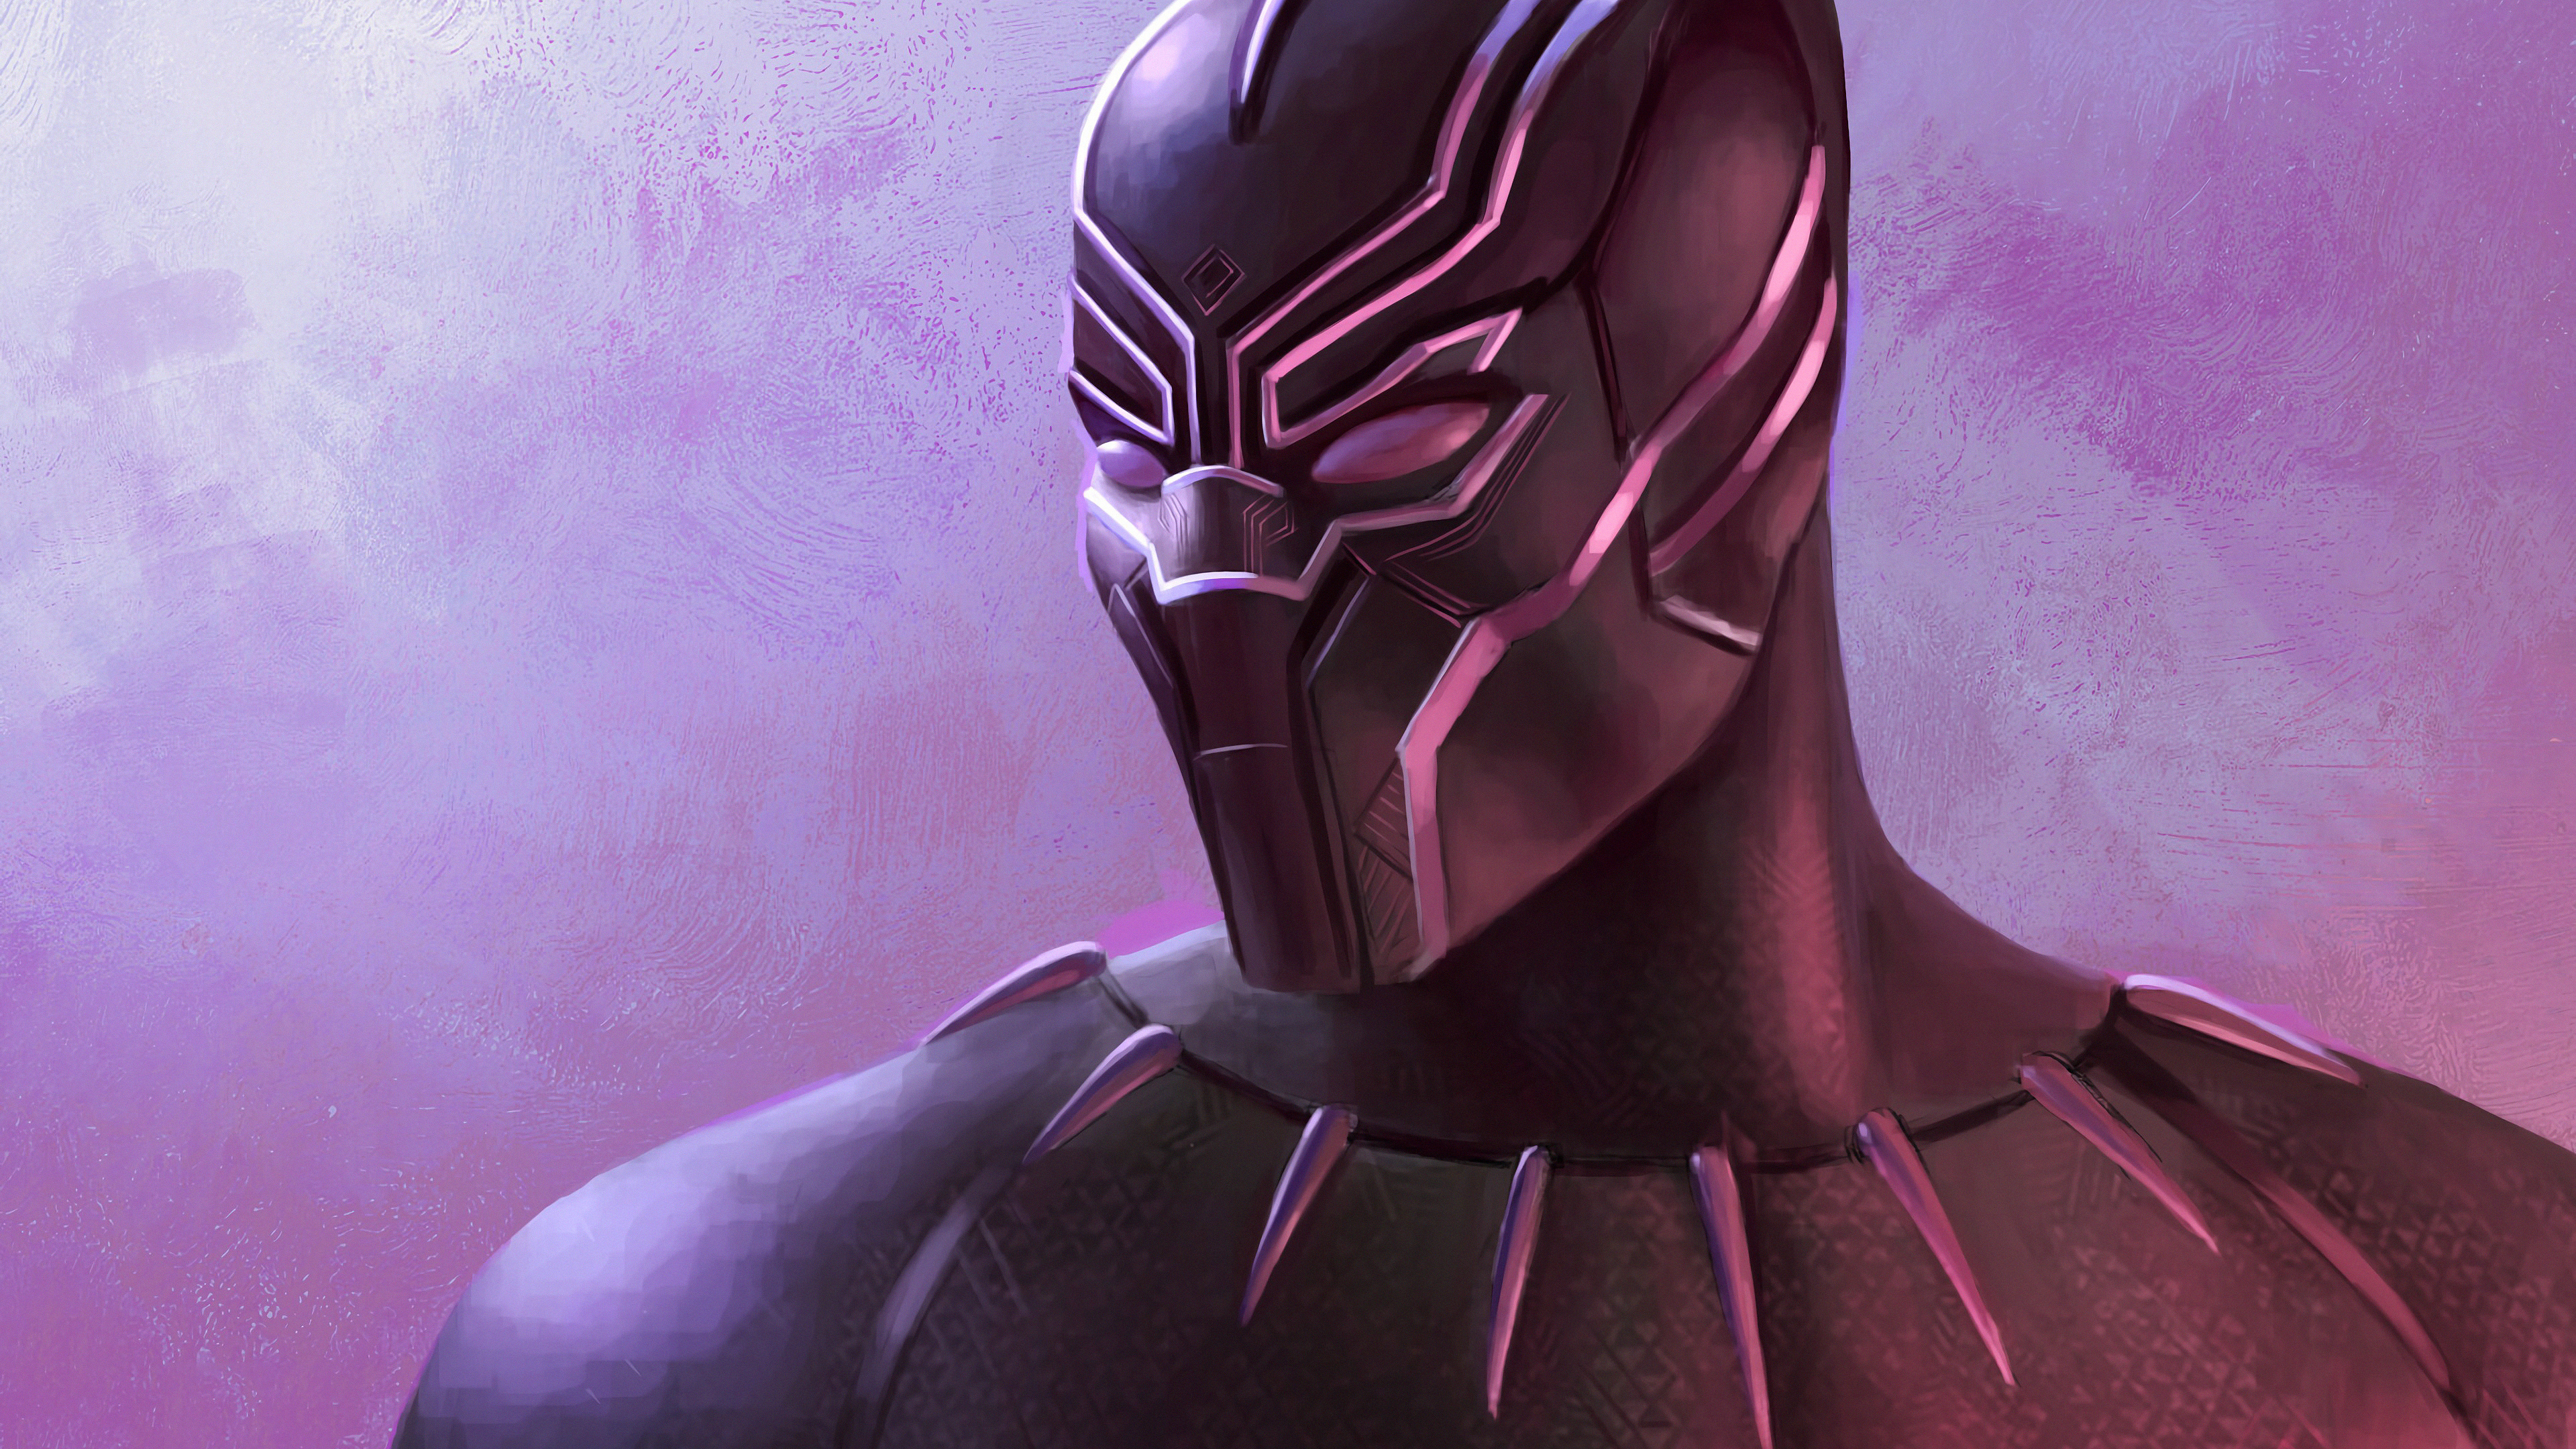 Wallpaper 4k Black Panther Art 4k Wallpapers Artwork Wallpapers Black Panther Wallpapers Hd Wallpapers Superheroes Wallpapers